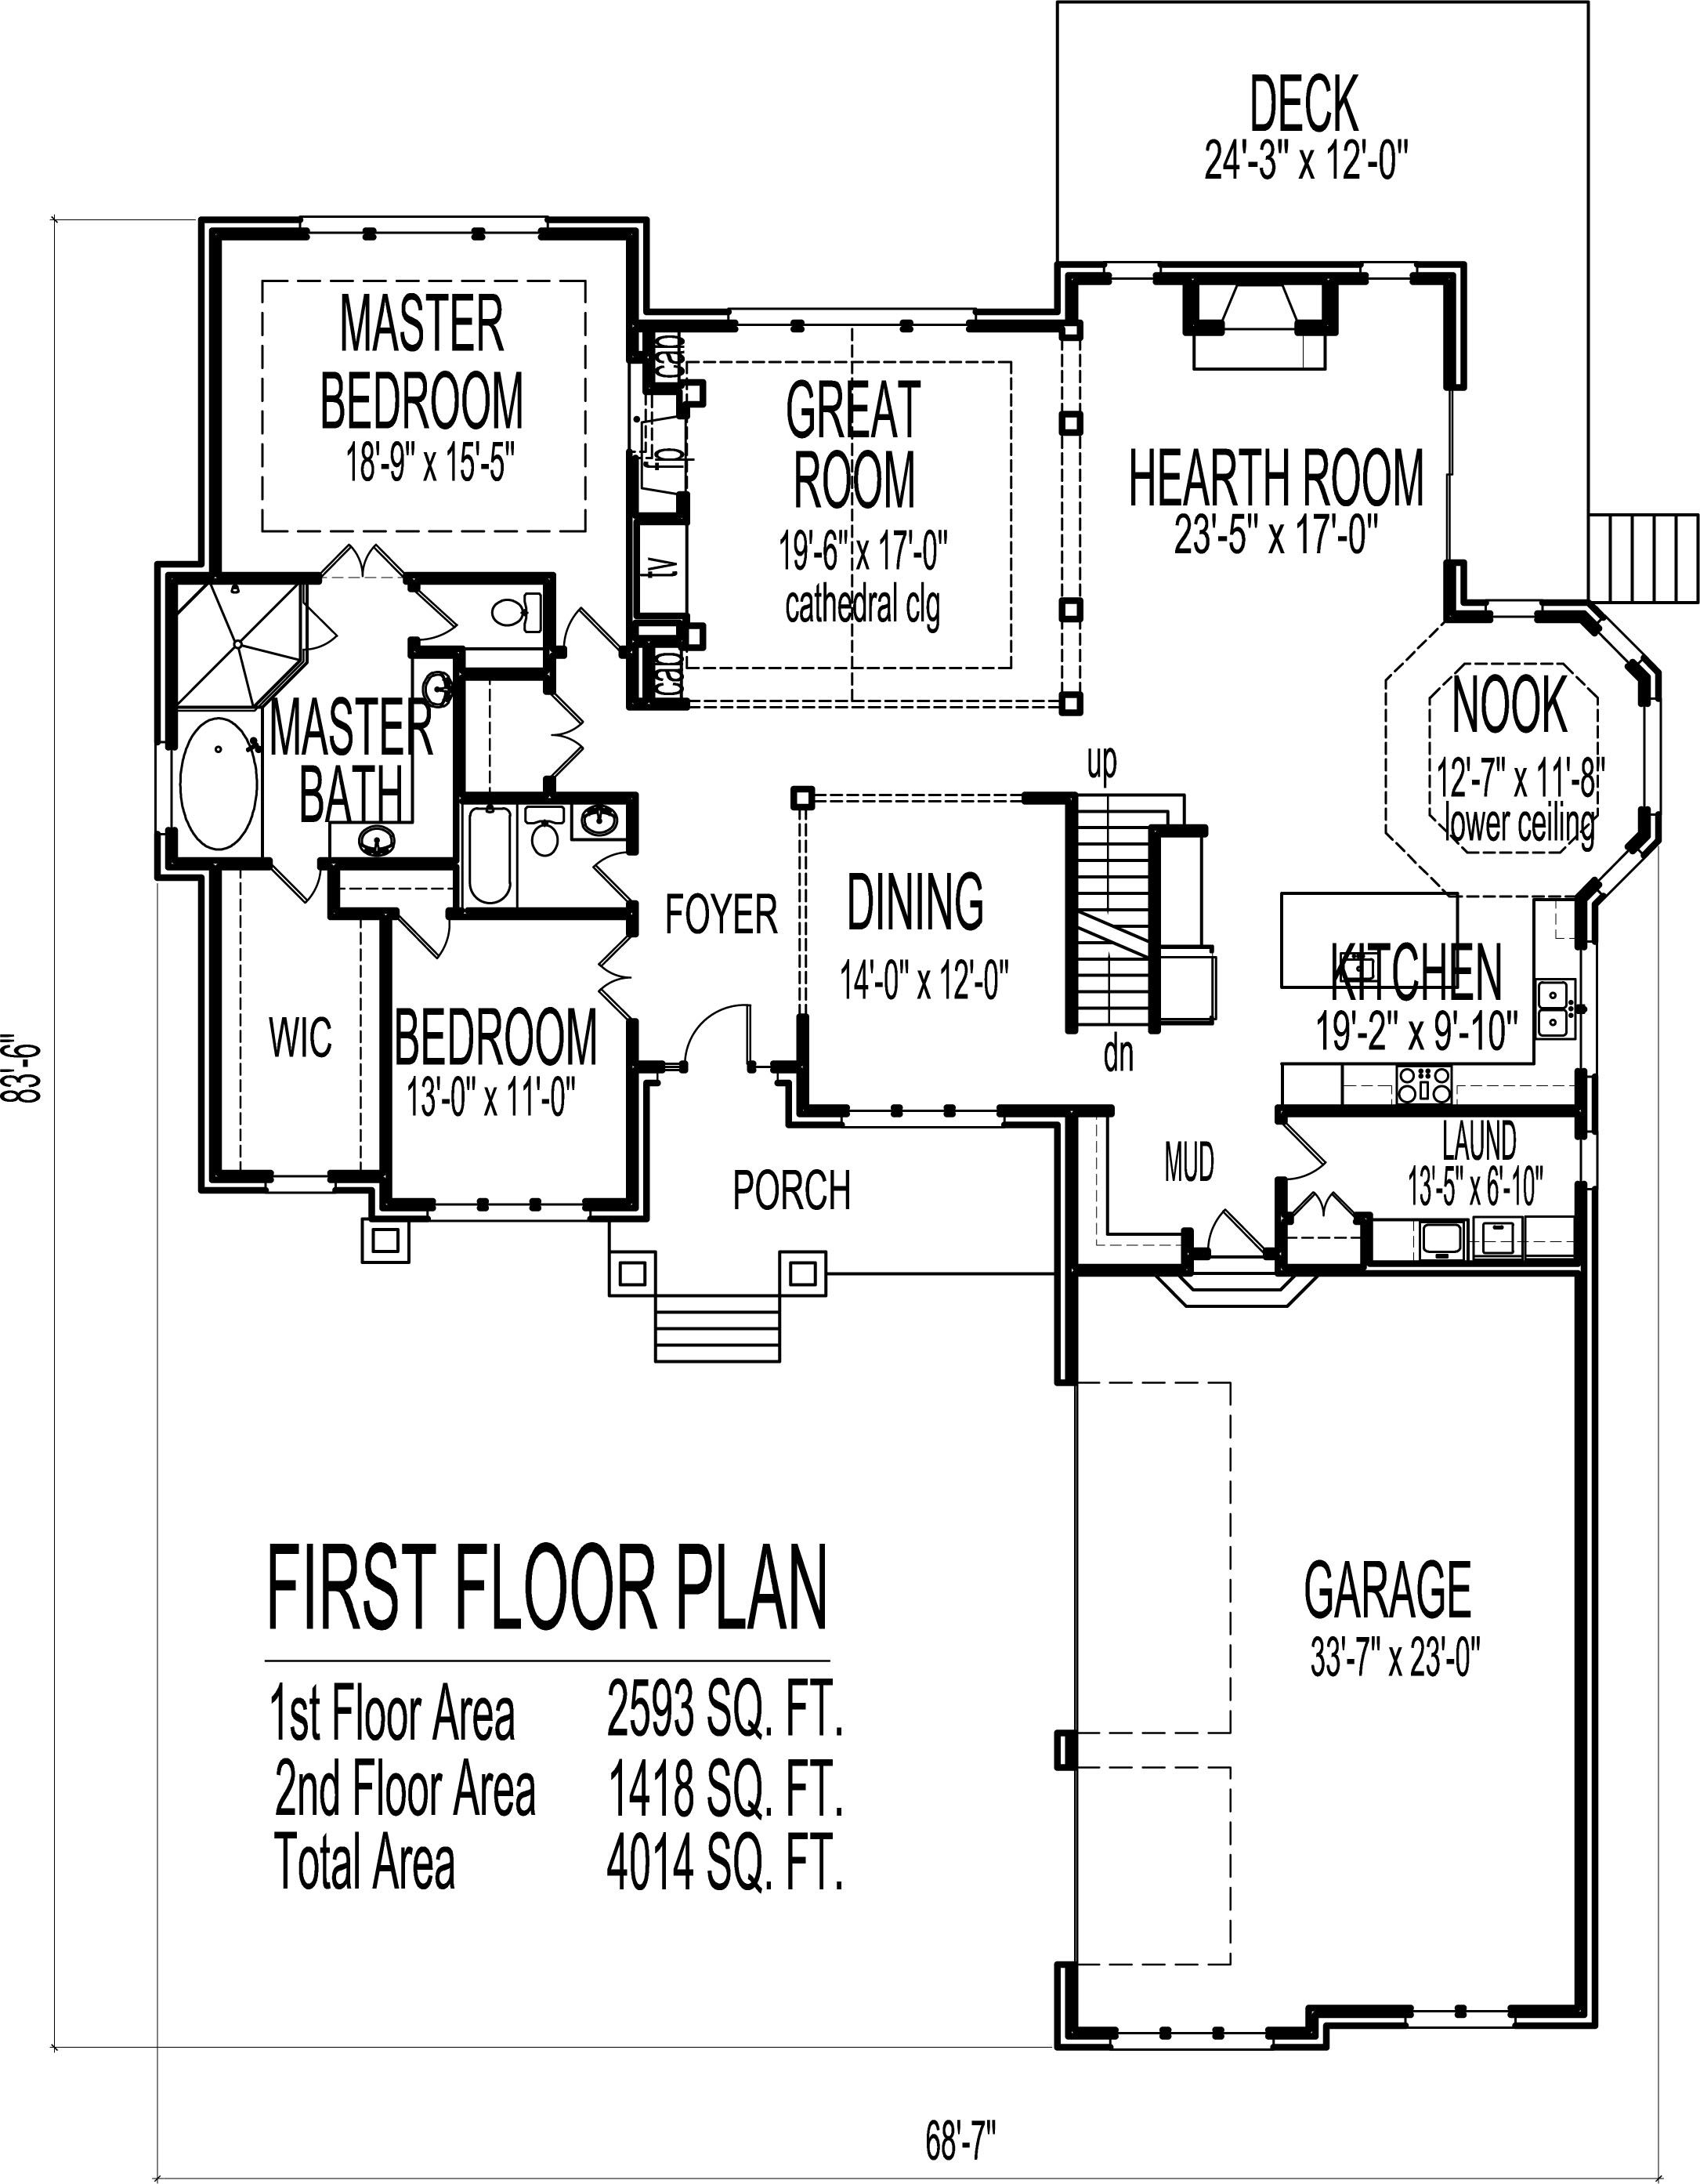 2 Story House Floor Plans 6 Bedroom Craftsman Home Bungalow House Floor Plans Two Story House Plans Bedroom House Plans